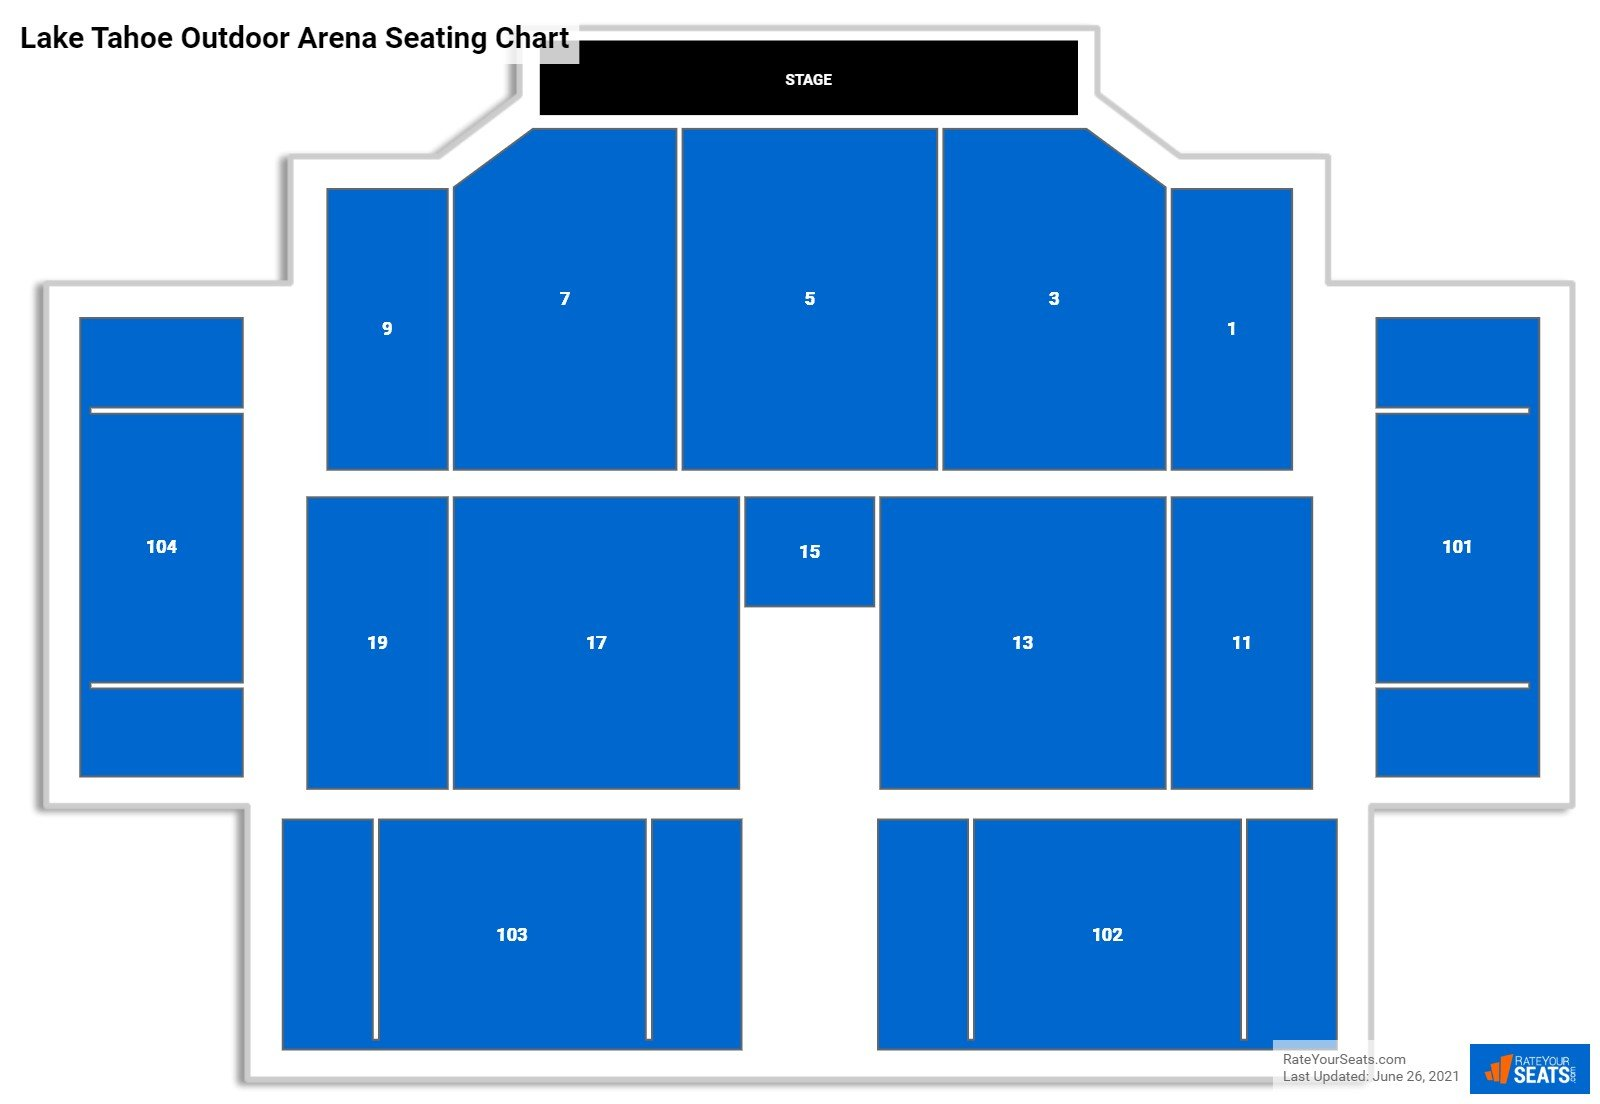 Lake Tahoe Outdoor Arena Seating Chart